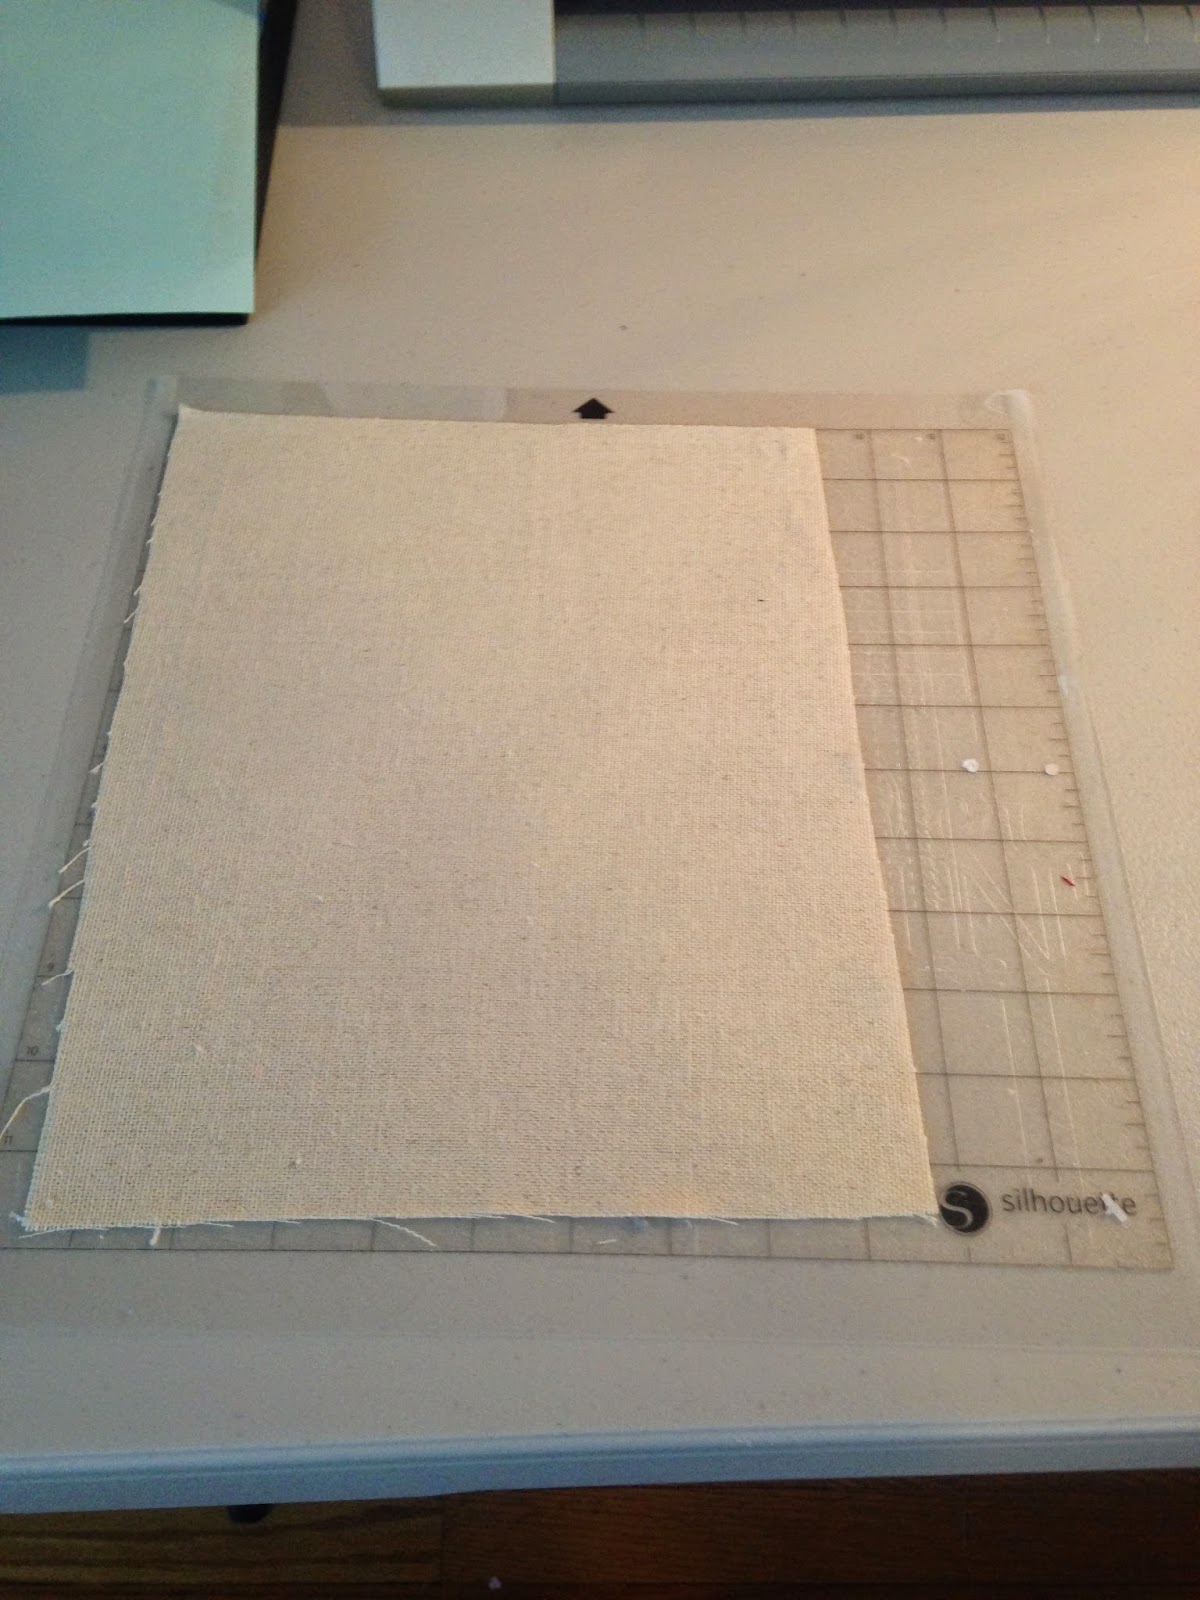 Silhouette Cameo, cut drop cloth, Silhouette tutorial, Silhouette cutting mat